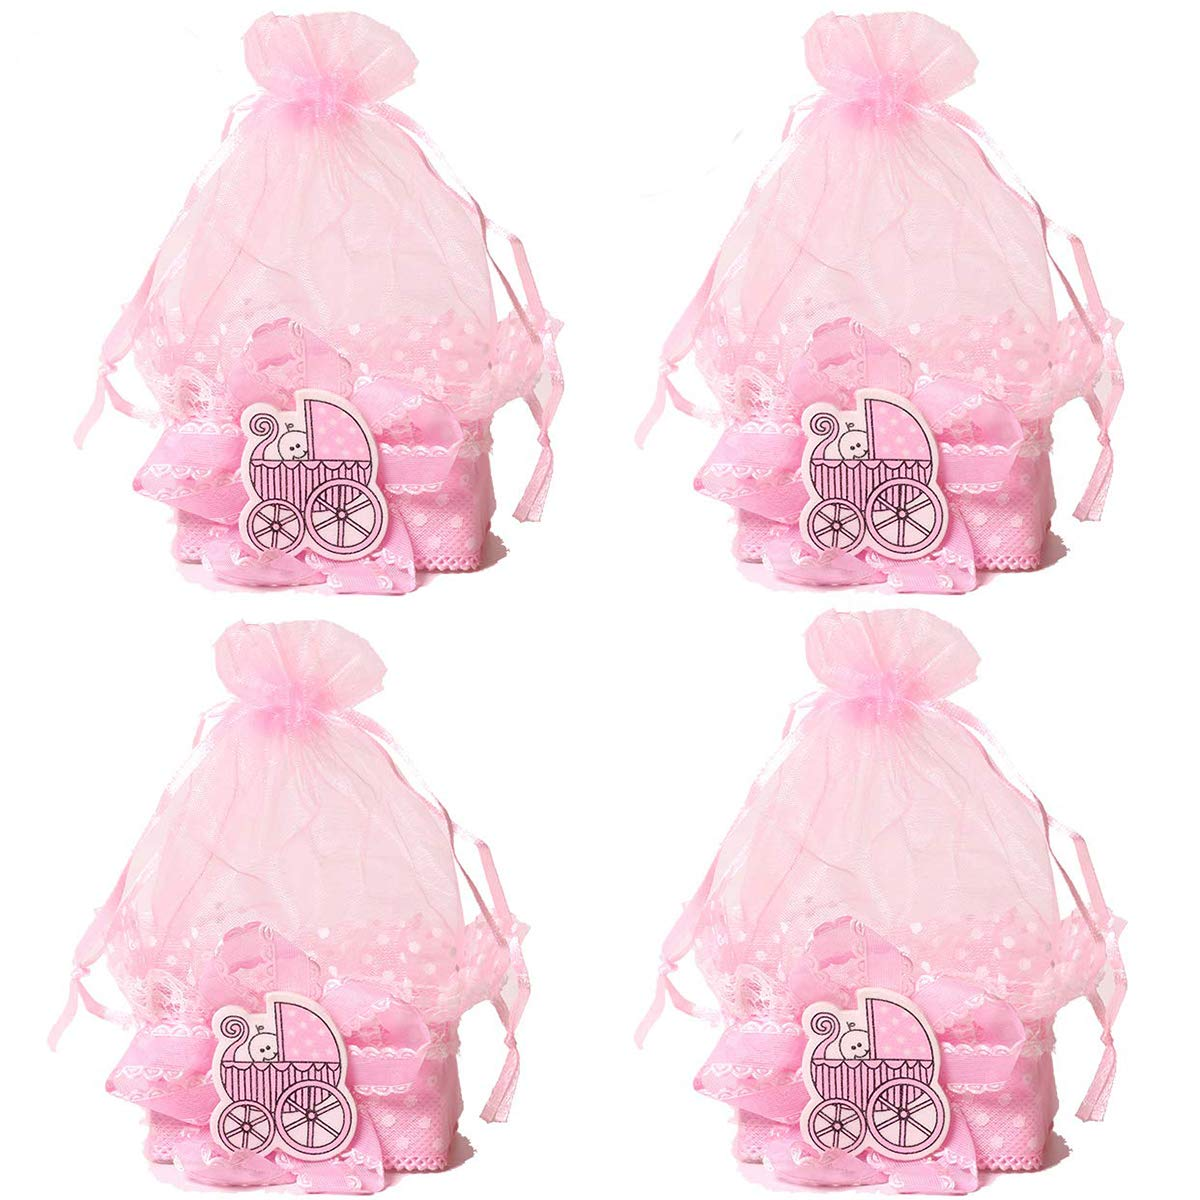 12 Pack Pink Baby Shower Candy Bags Candy Favors Bags, Mini Drawstring Organza Candy Basket for Baby Girls' Shower Birthday Party Gift Bags